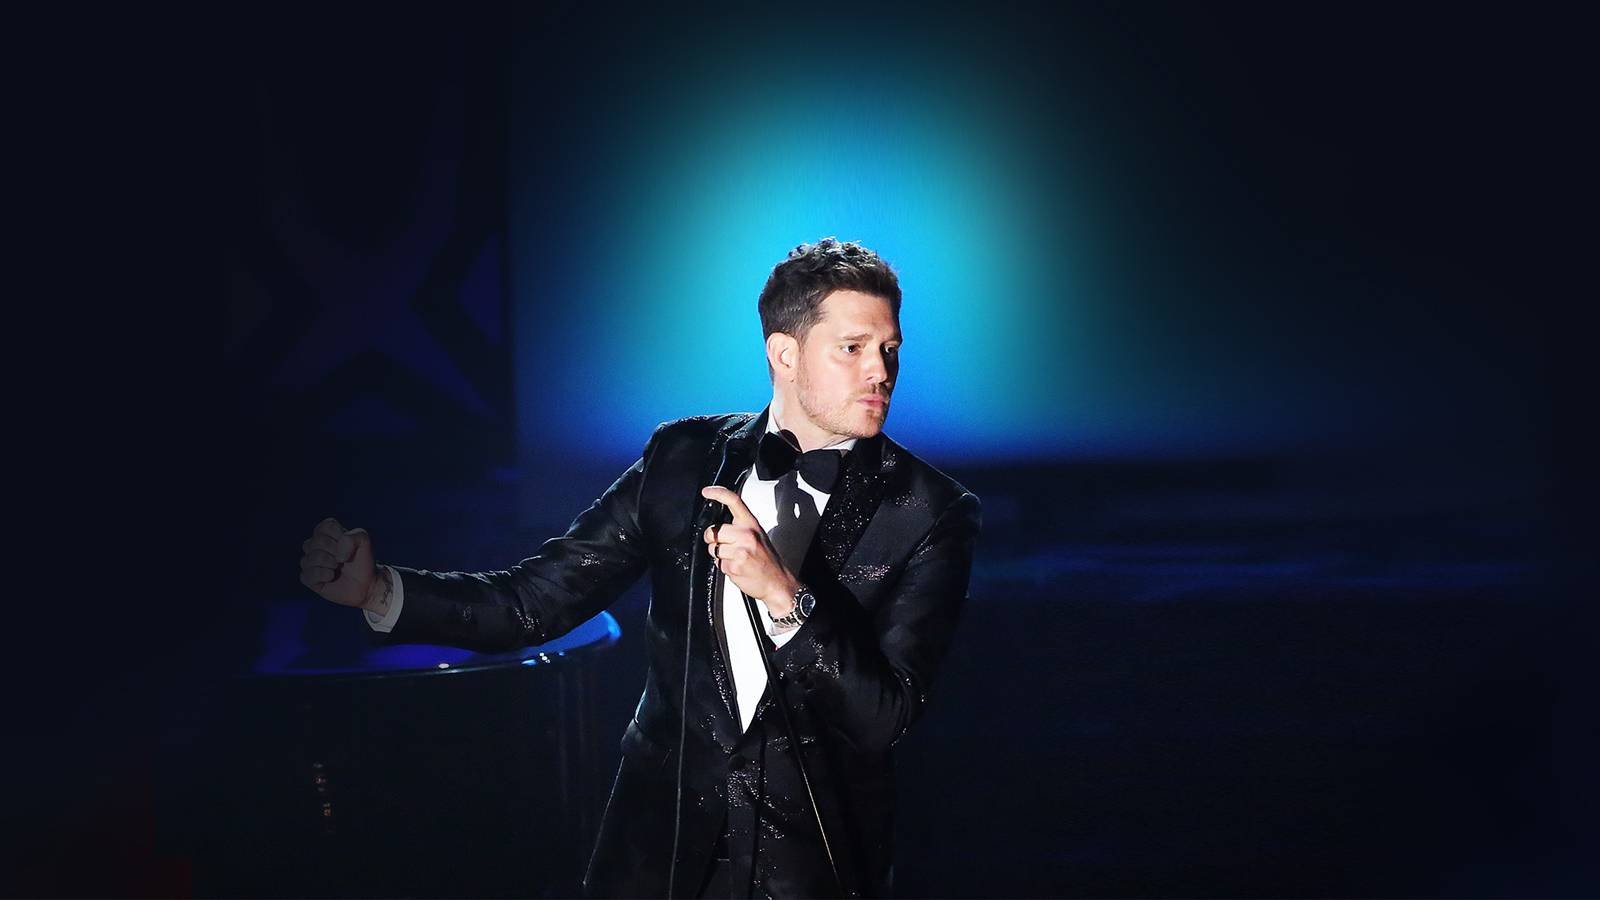 Michael Buble (Rescheduled from 4/5/2020)